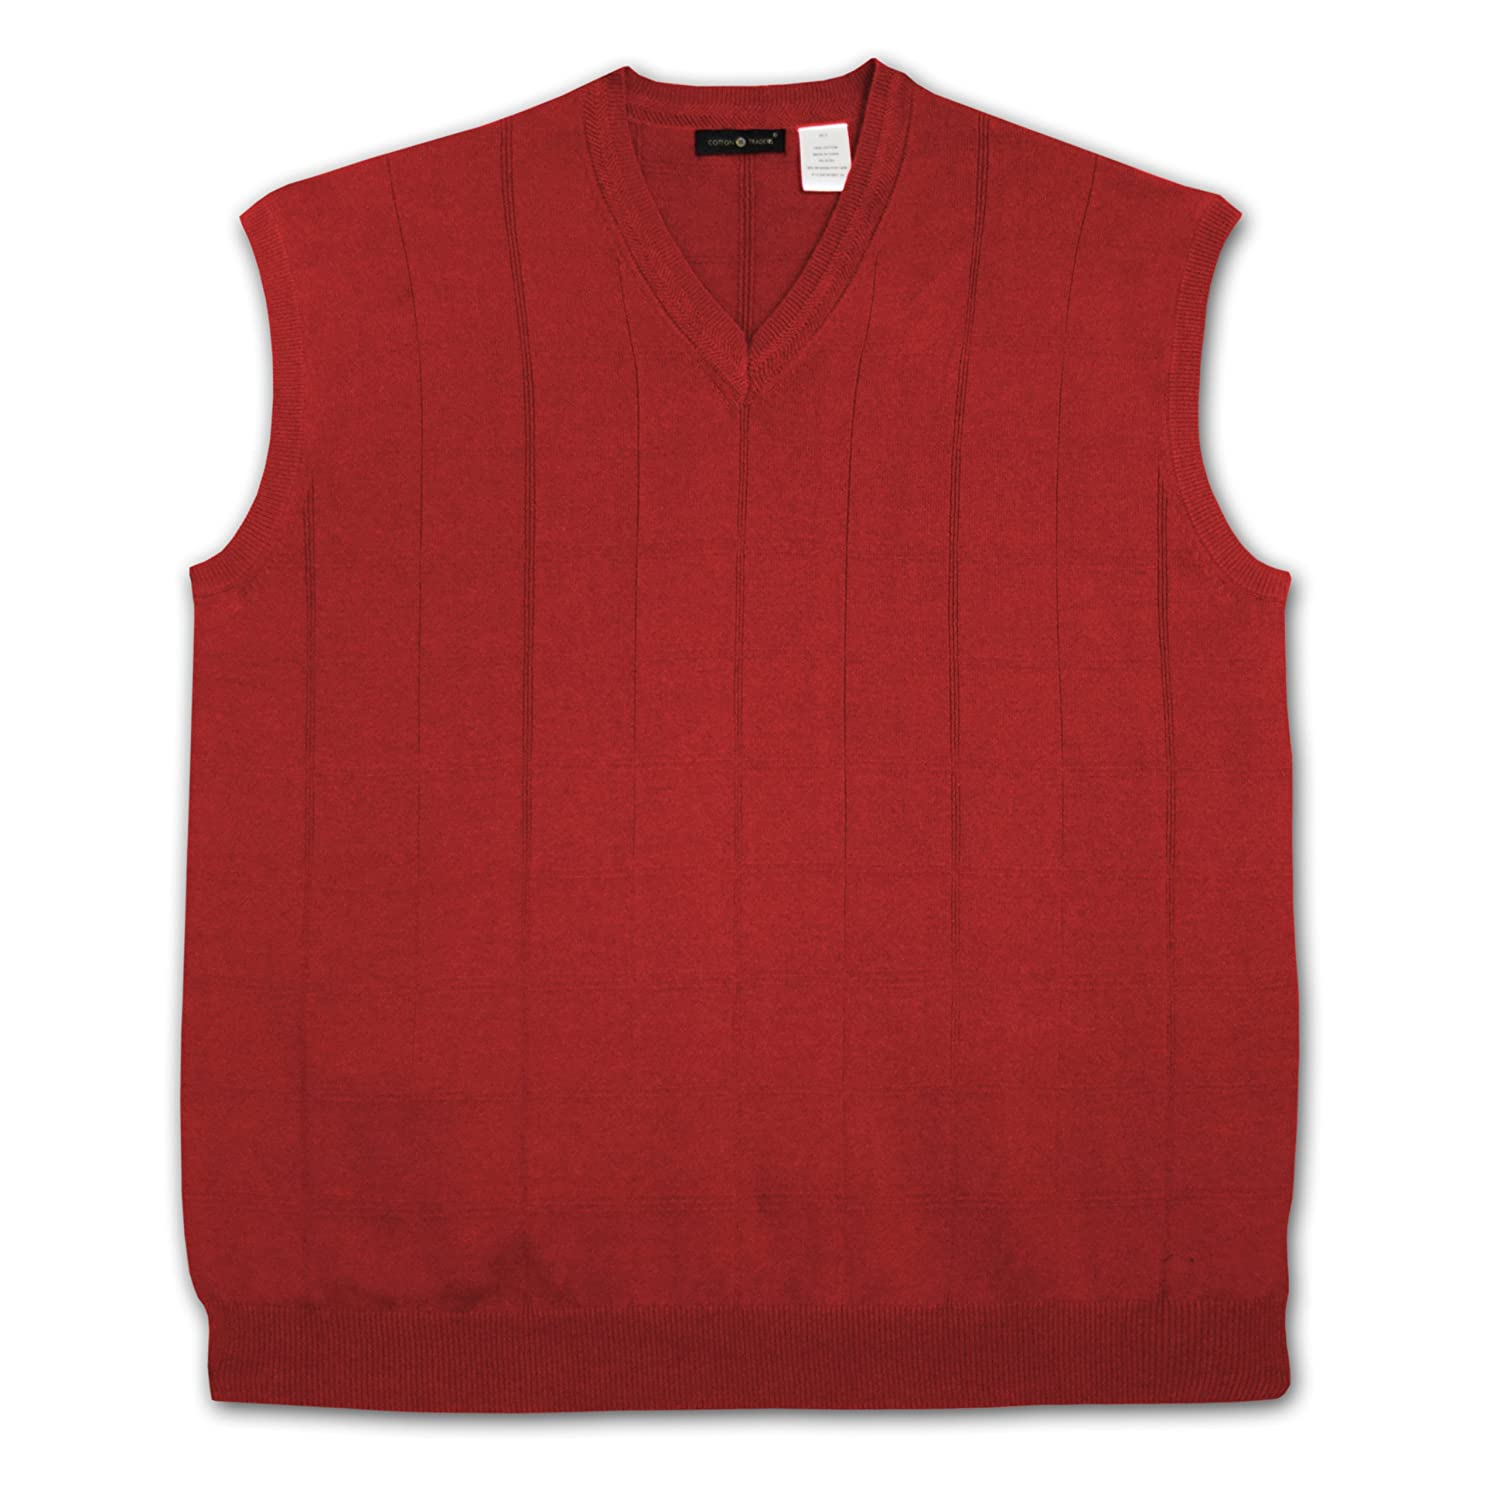 Amazon.com: Cotton Traders V-Neck Pullover Sweater Vest: Clothing